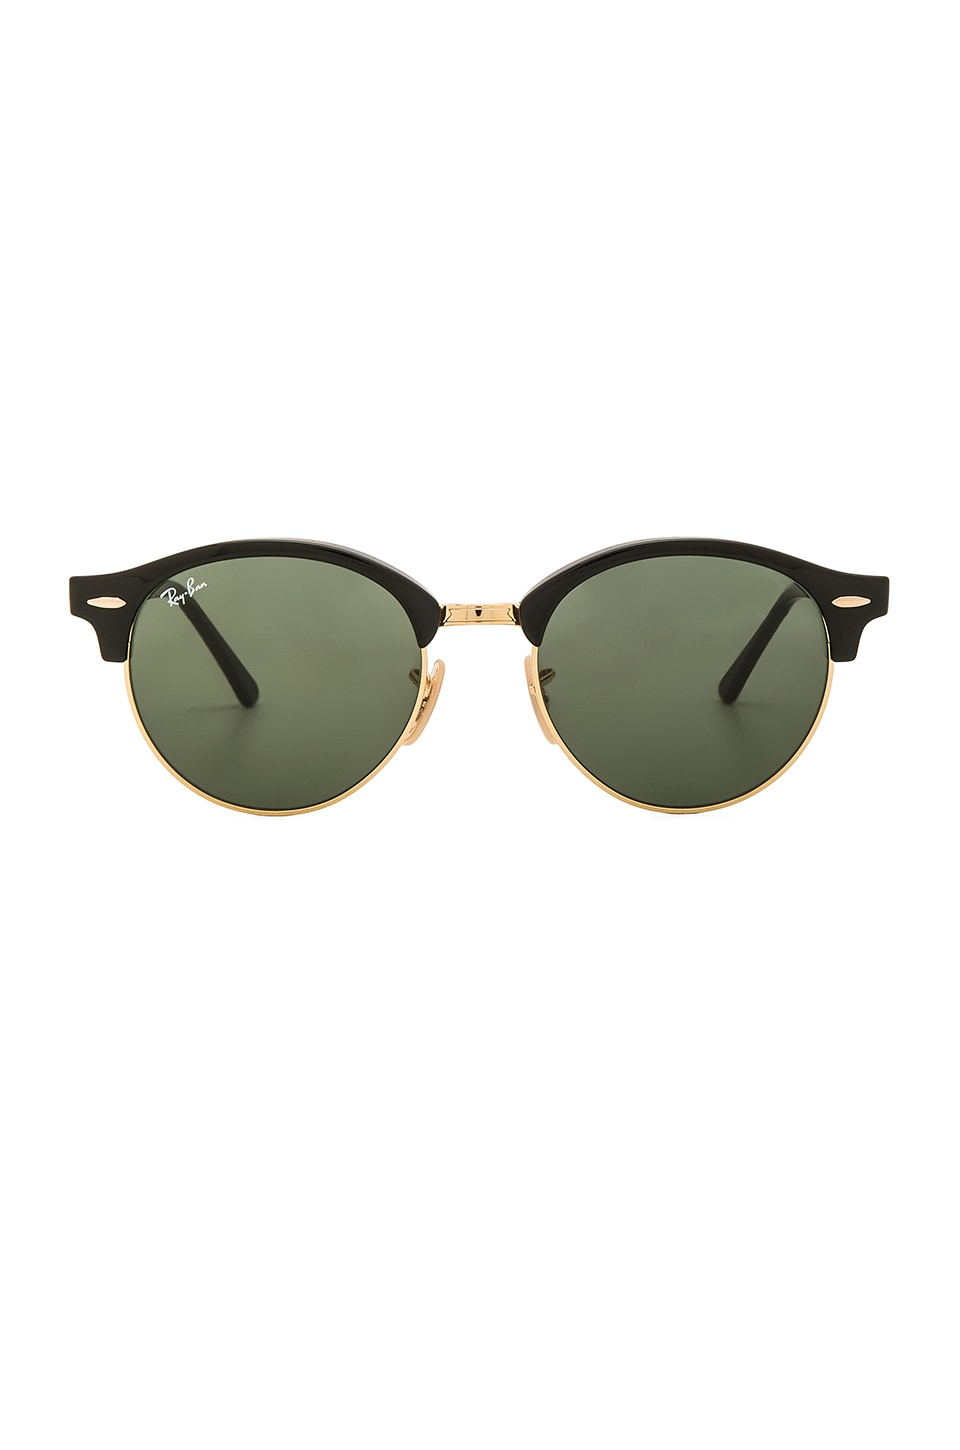 Ray-Ban Clubround Classic in Black